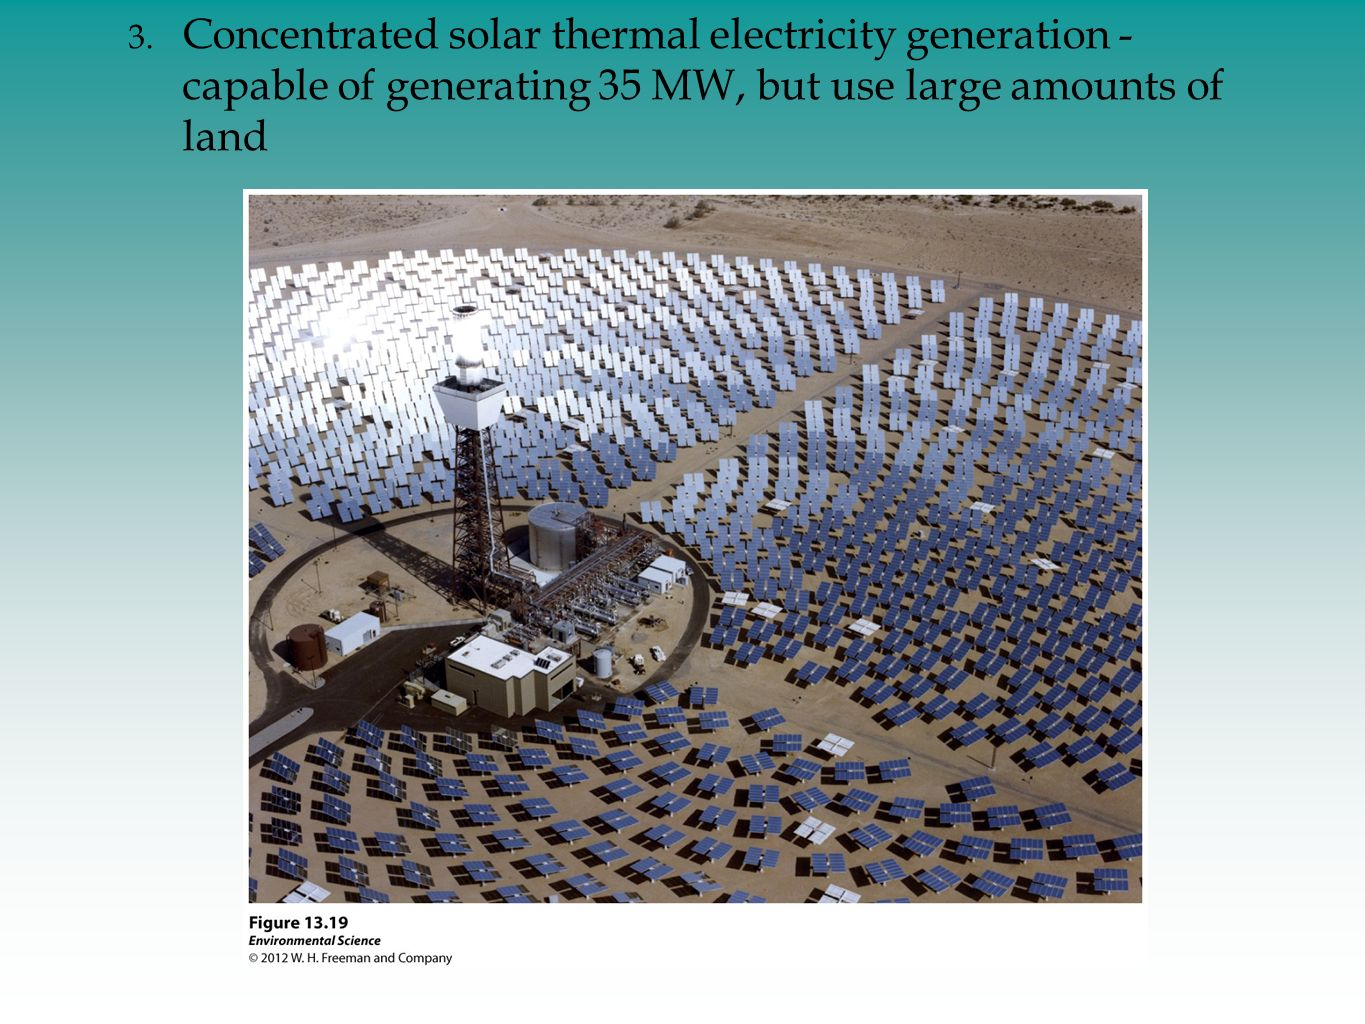 Concentrated solar thermal electricity generation - capable of generating 35 MW, but use large amounts of land